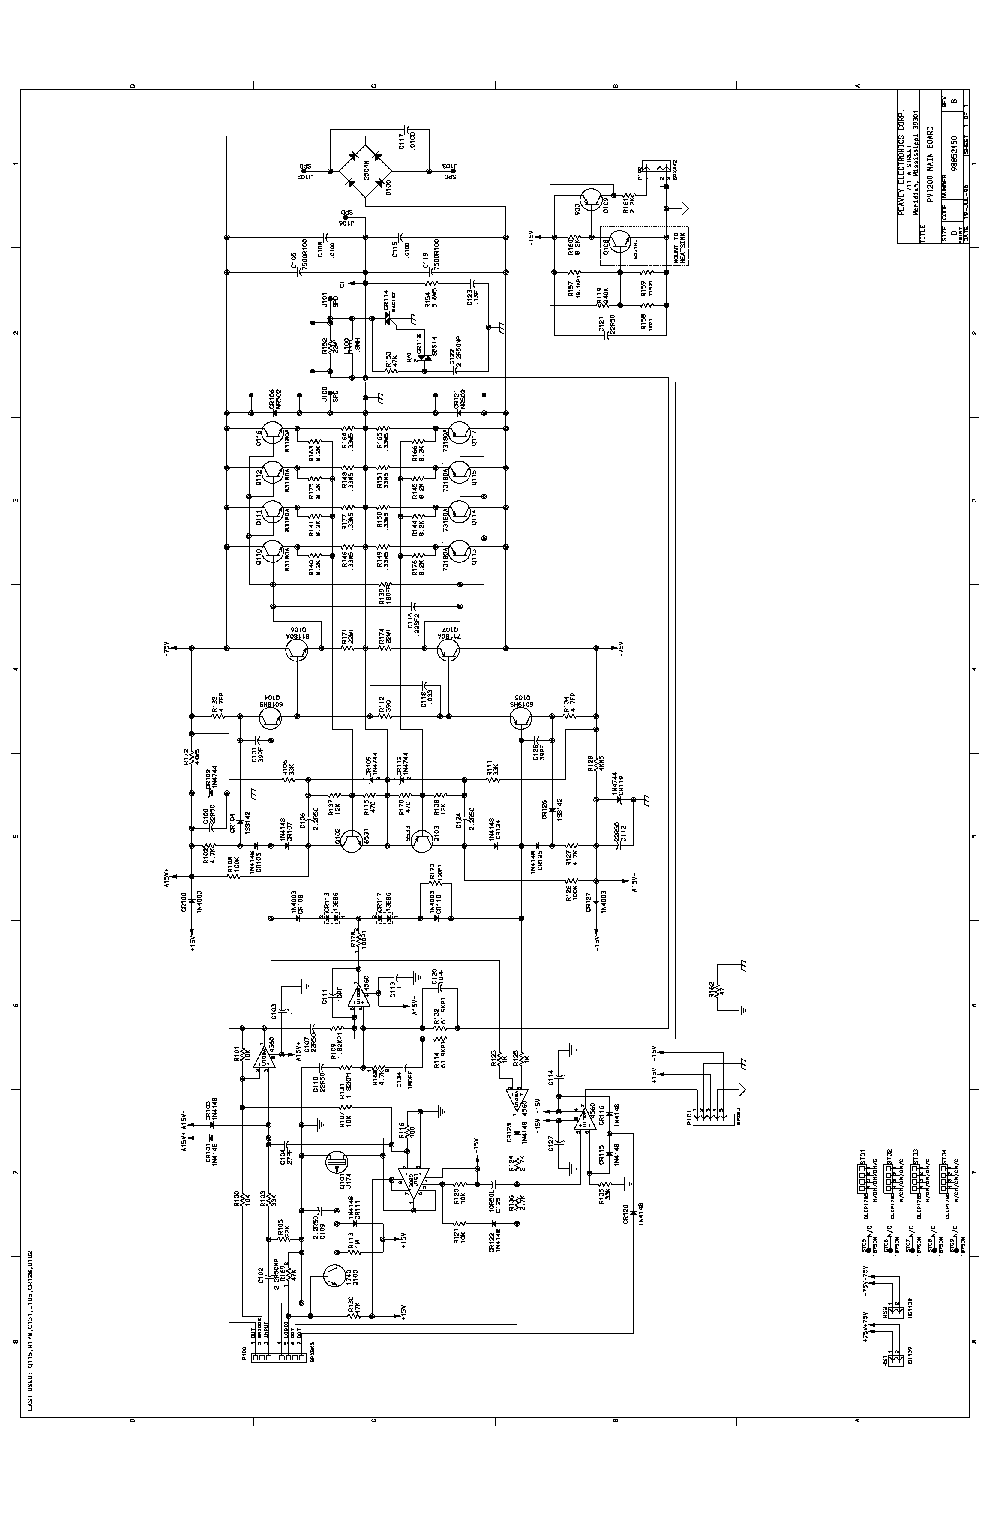 Manual Eprom Programmer Circuit Diagram Super Circuit Diagram